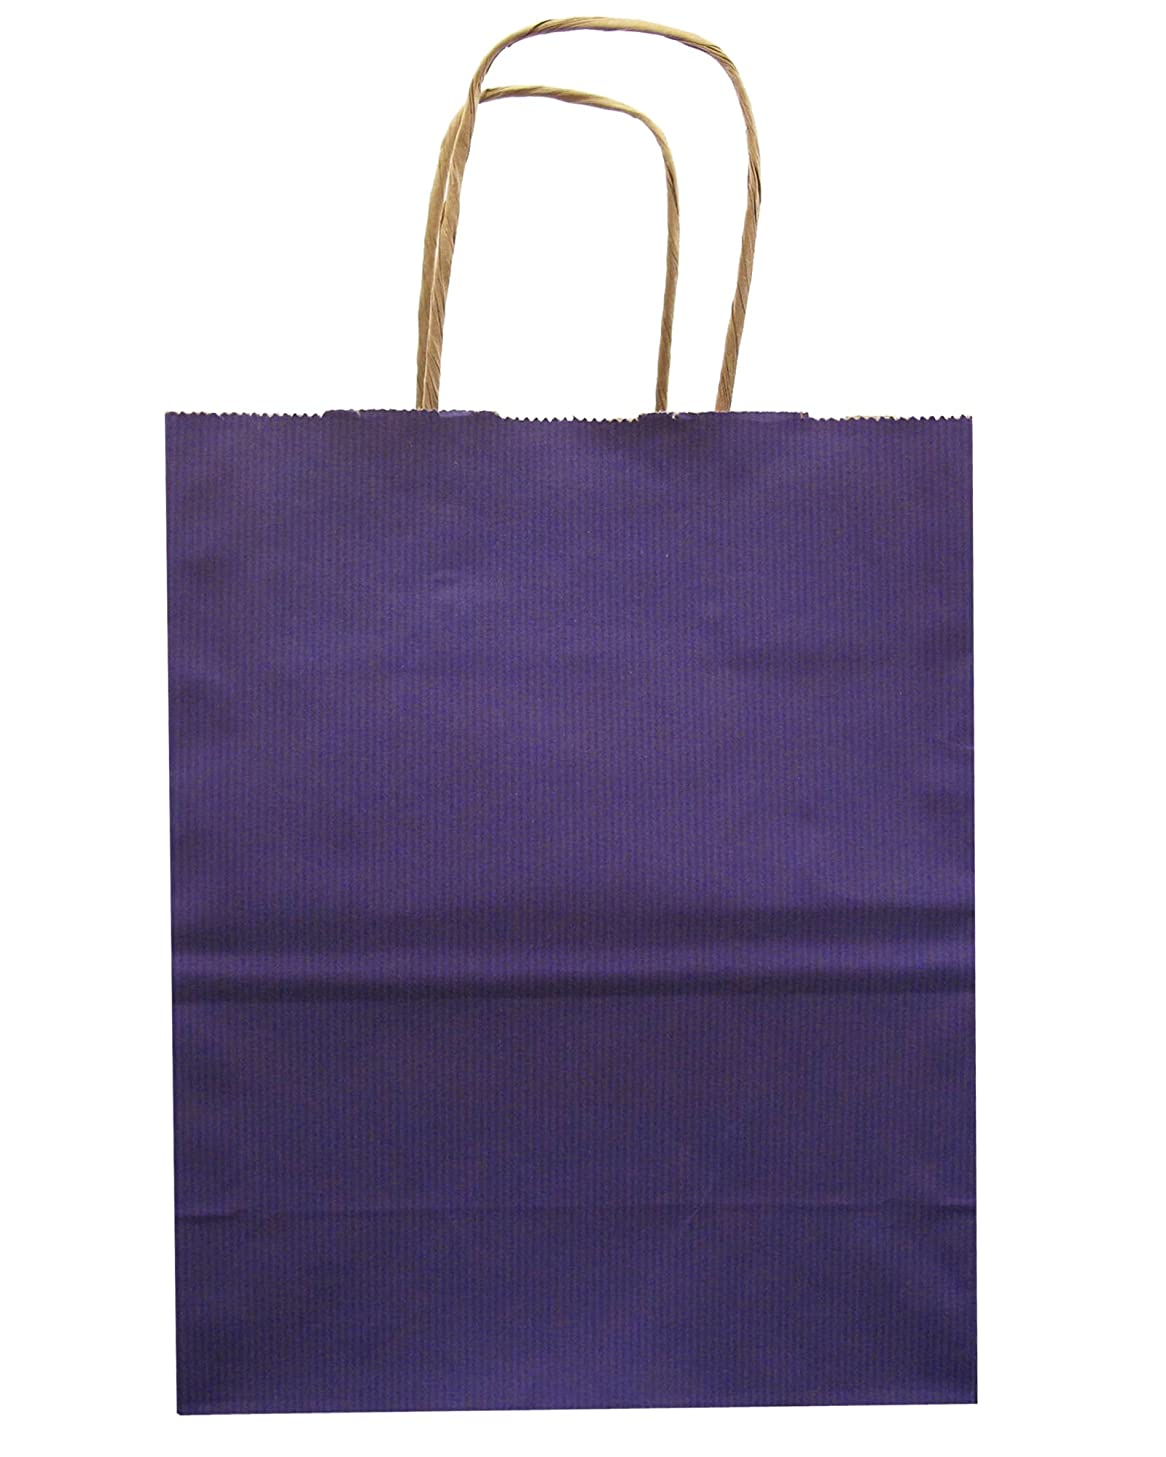 Jillson Roberts Bulk Medium Recycled Kraft Bags Available in 13 Colors, Purple, 250-Count (BMK903)